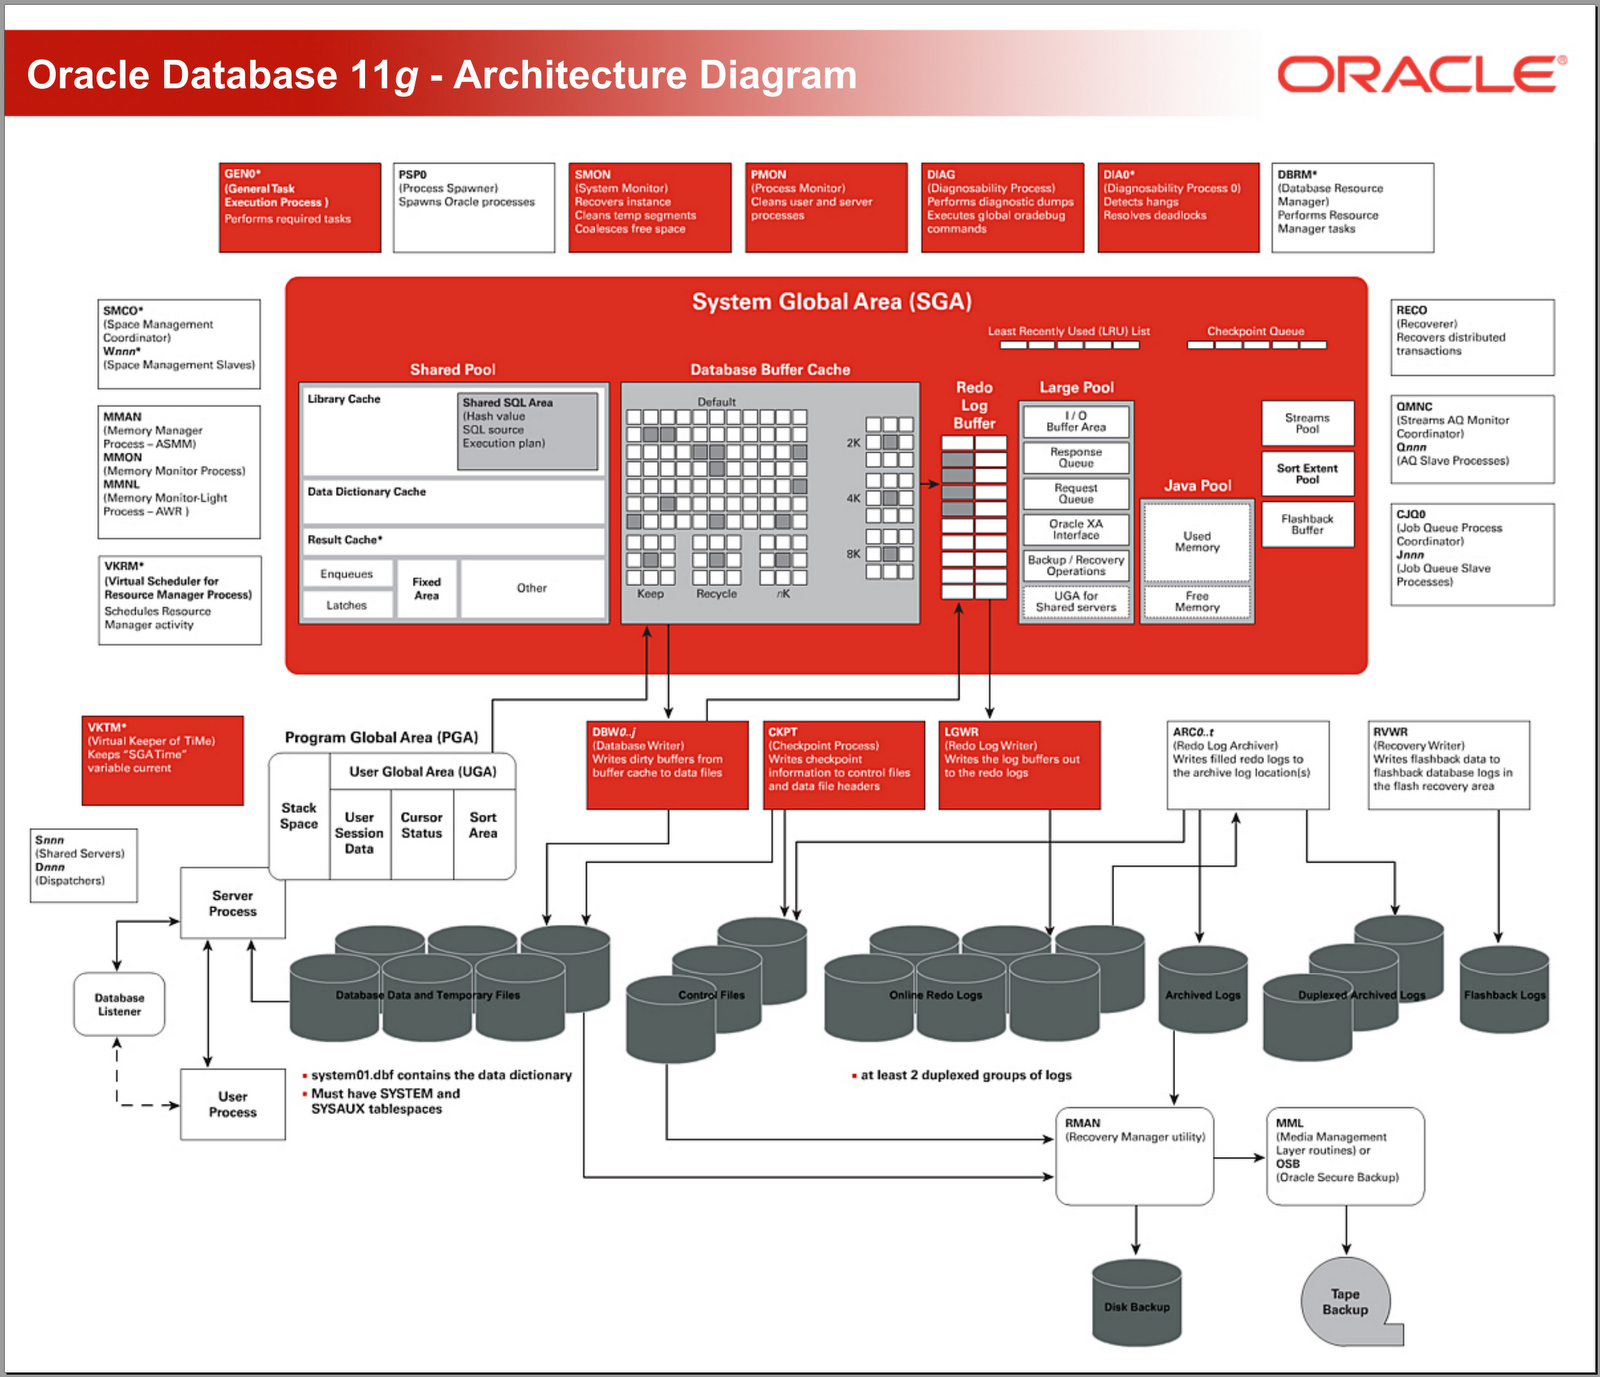 oracle database 11g architecture diagram with explanation